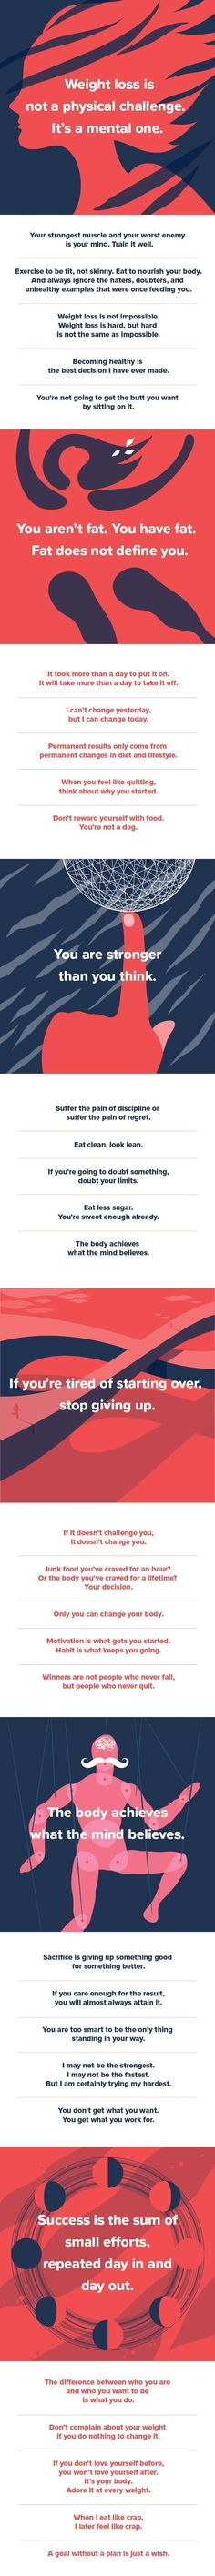 The Best Inspirational Quotes for Weight Loss https://www.musclesaurus.com